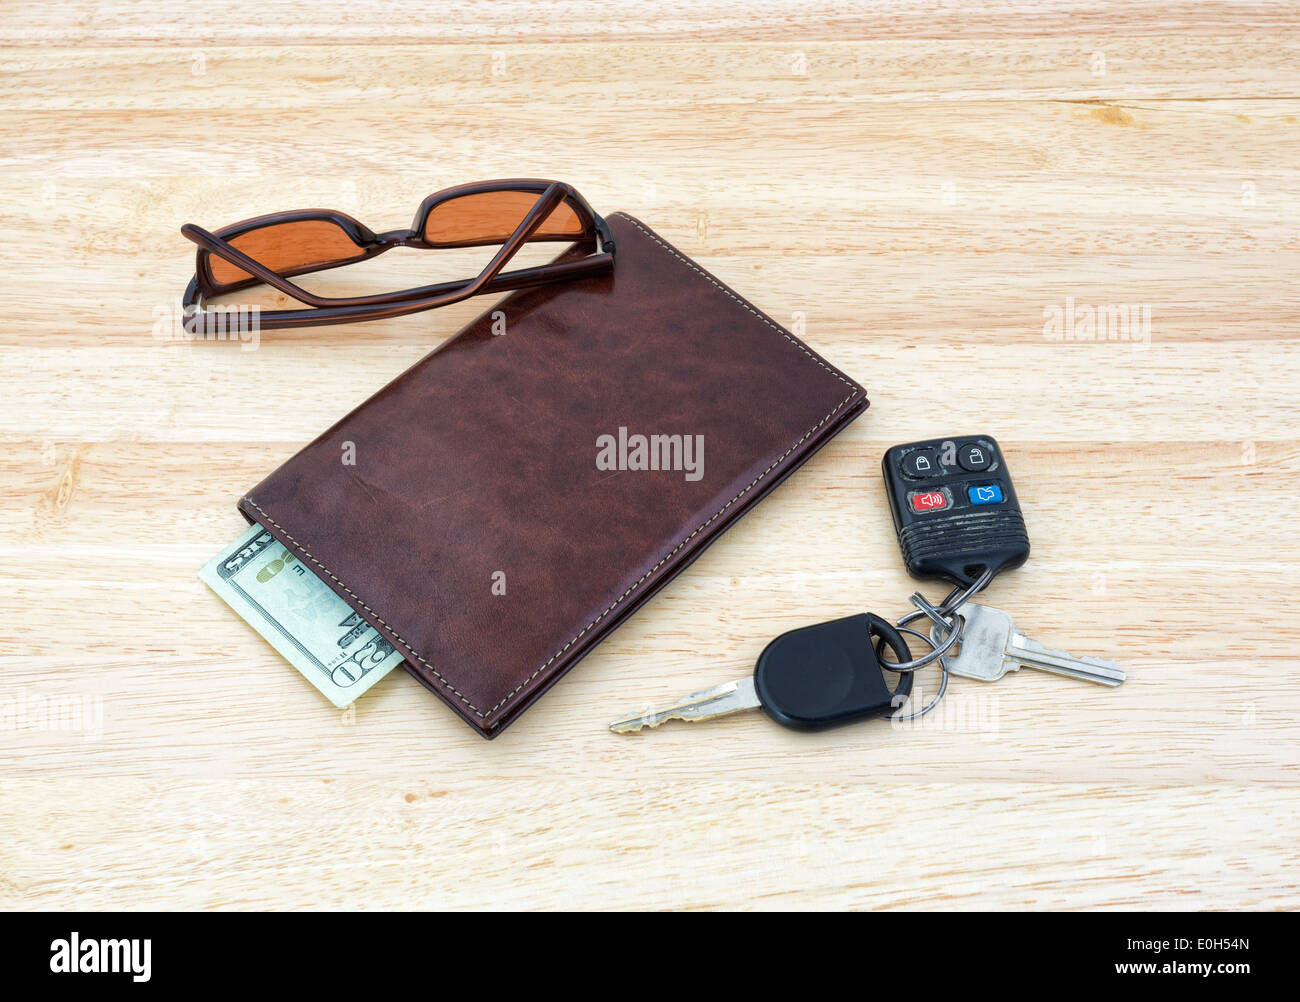 A set of car keys with sunglasses on a wood tabletop with a leather wallet and cash. - Stock Image